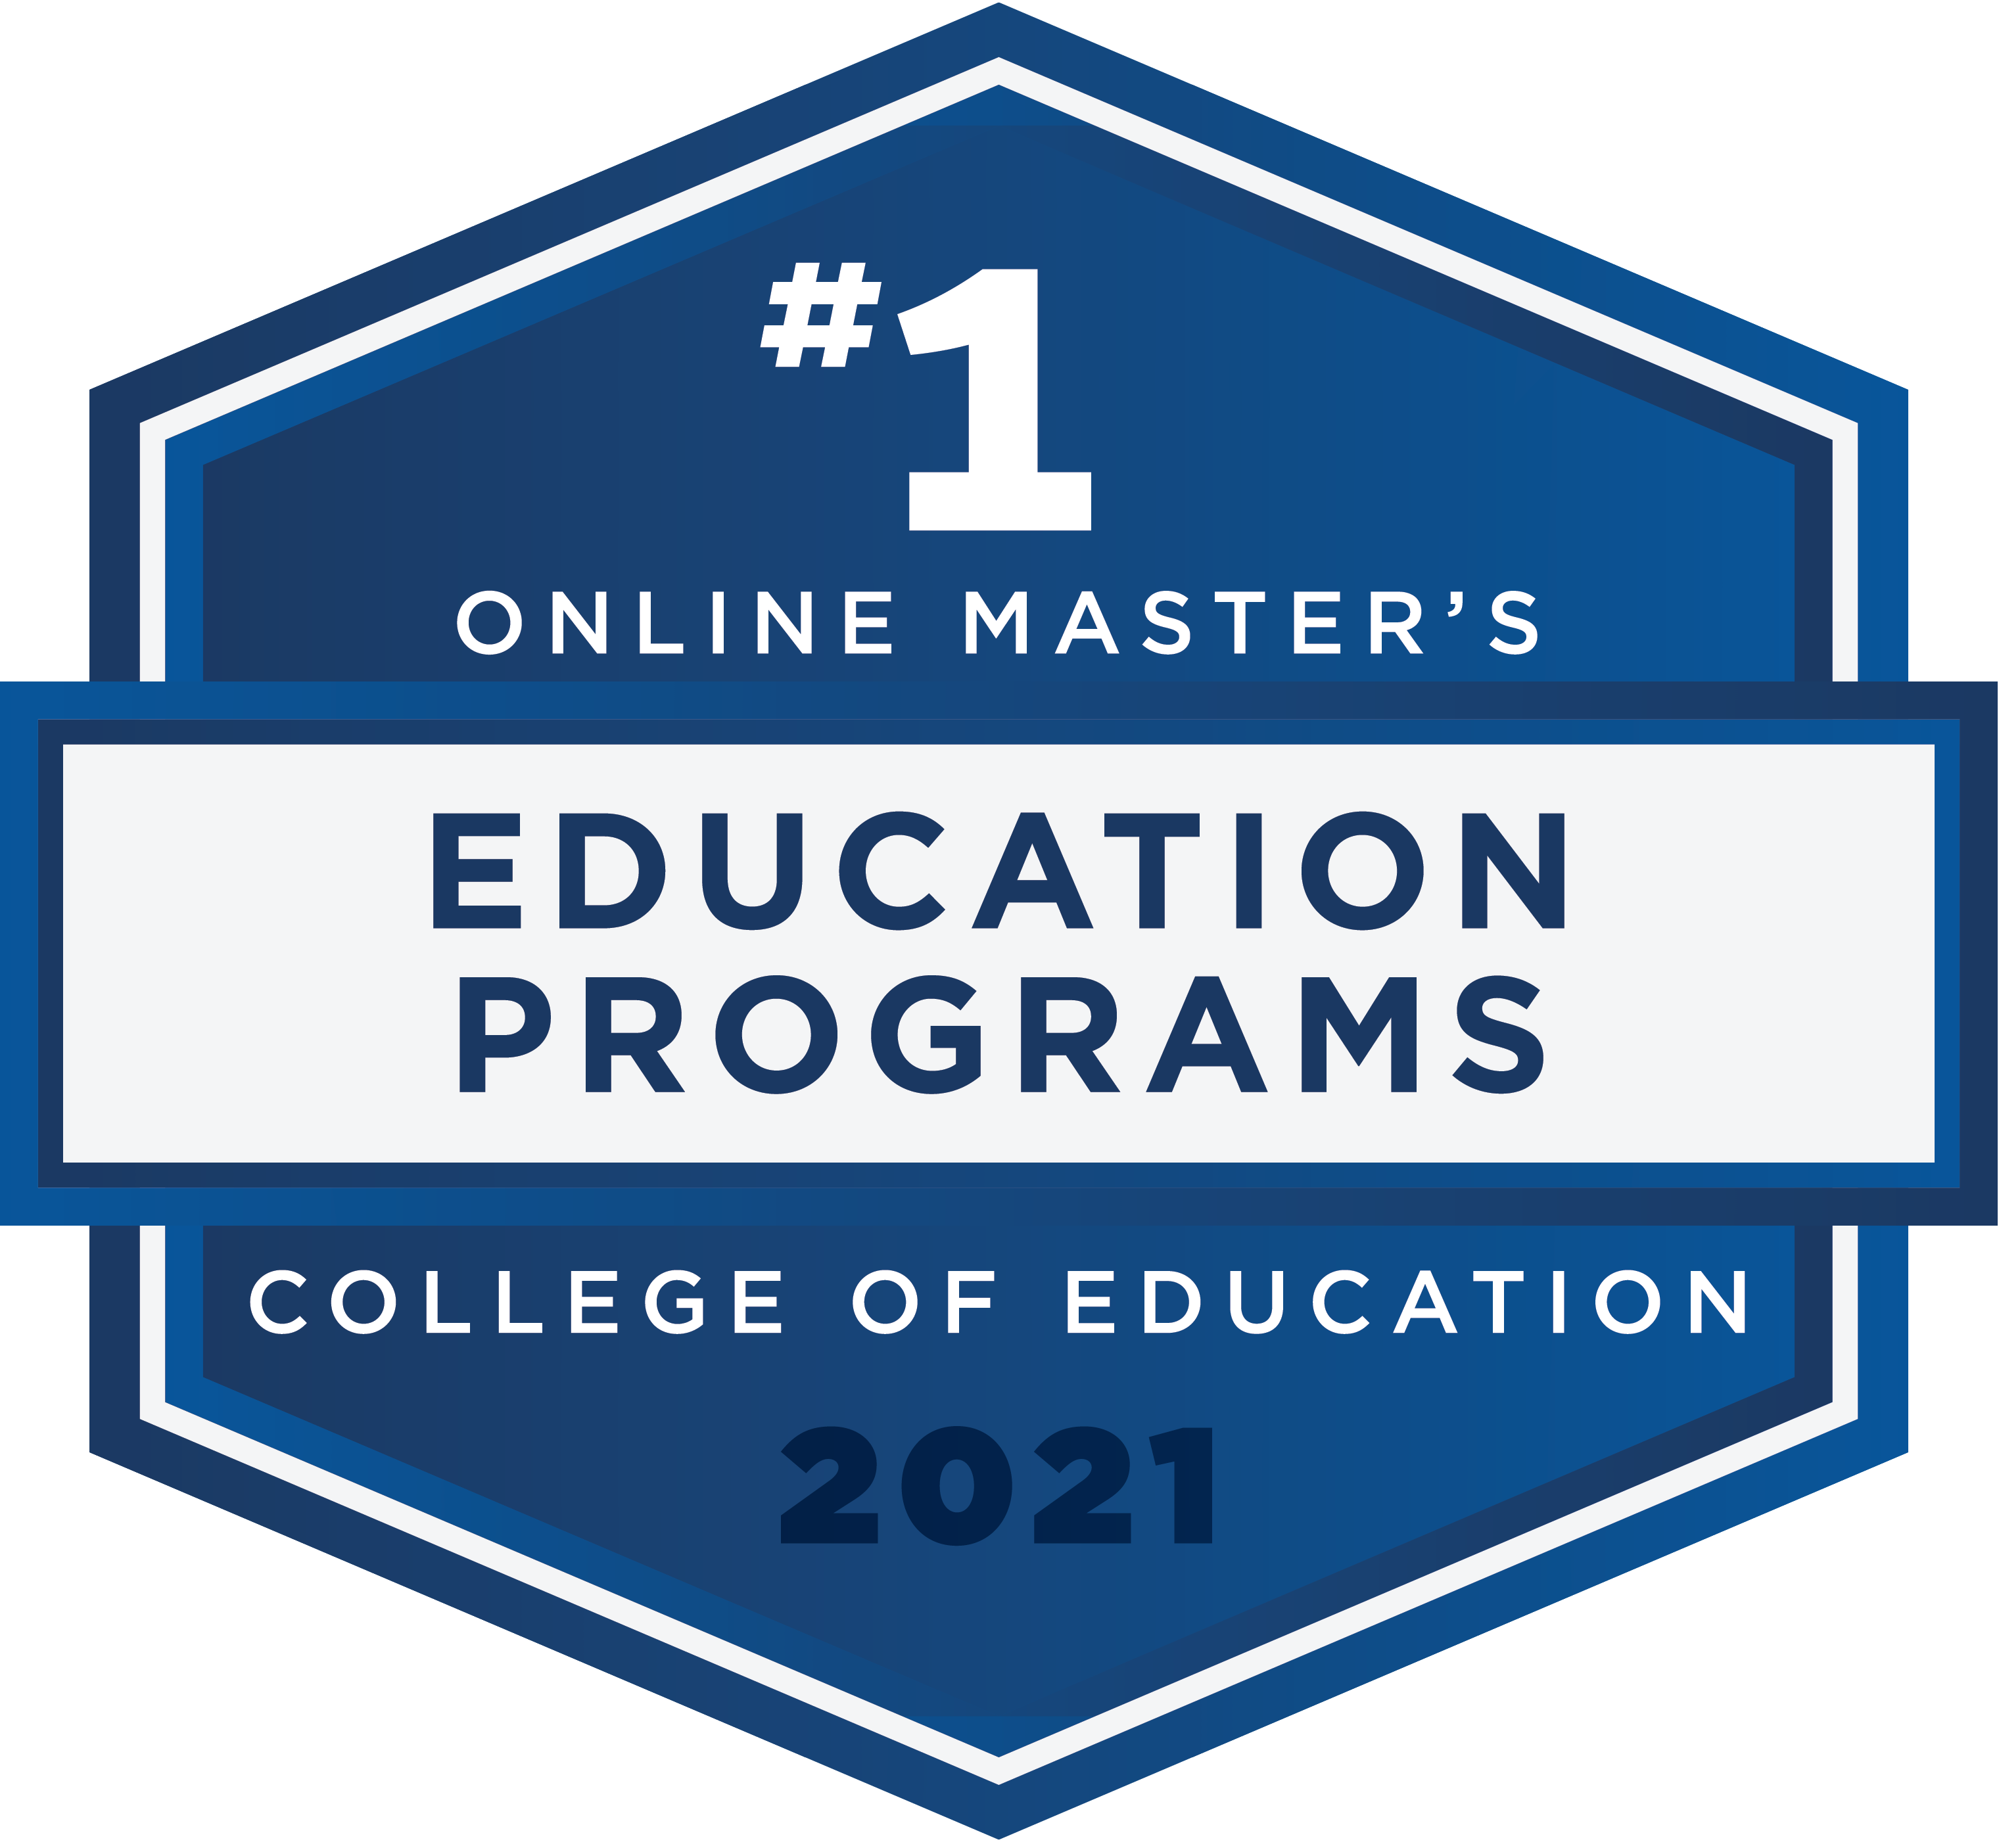 #1 Online Master's - Education Programs - College of Education - 2021